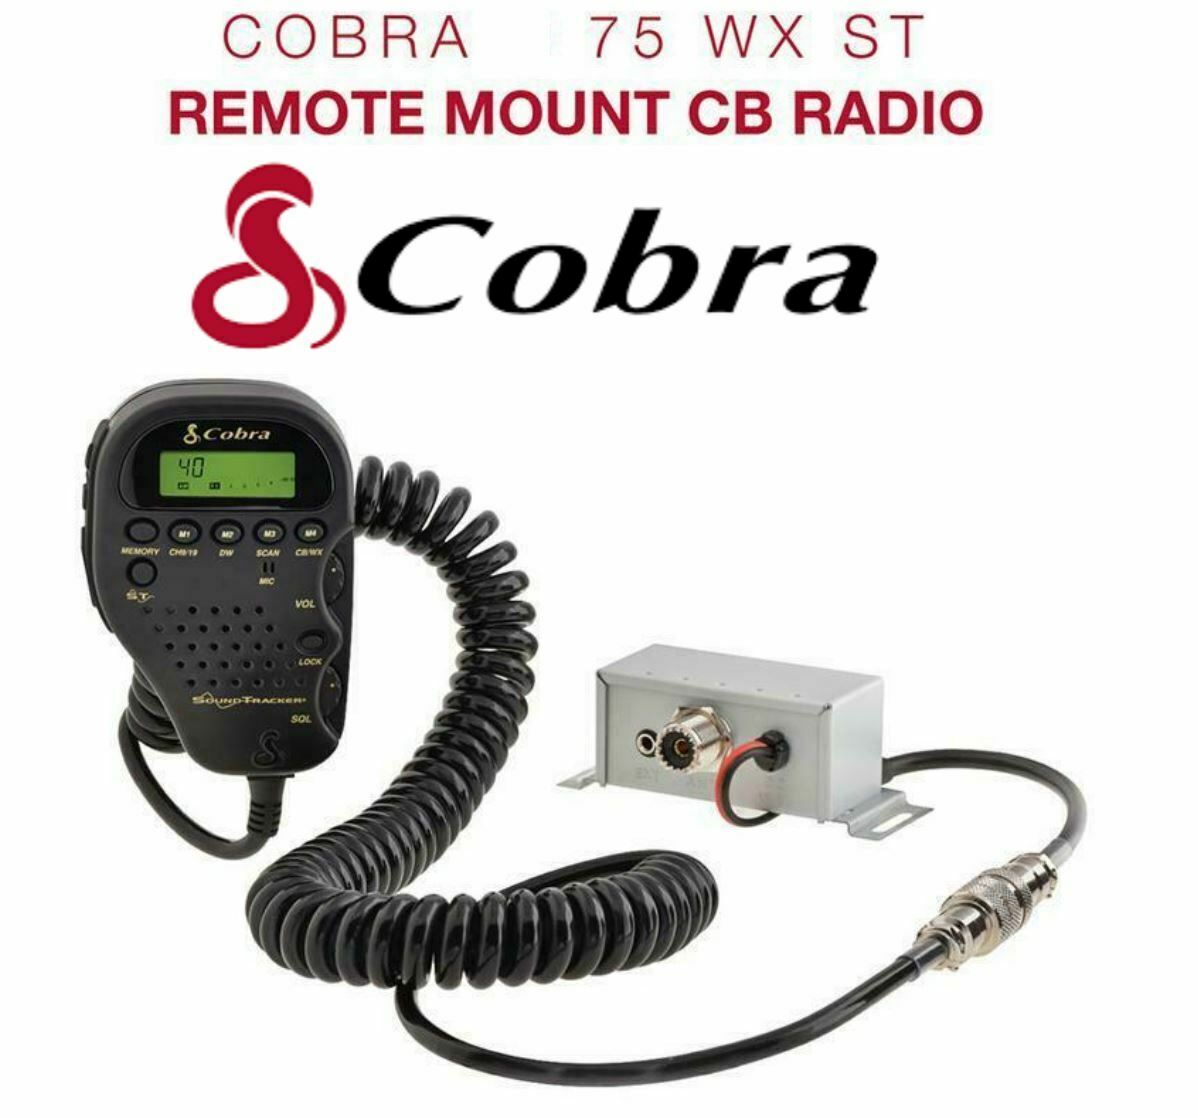 75WXST titantime COBRA 75WXST COMPACT REMOTE MOUNT 40 CHANNEL CB RADIO w/ WEATHER & SOUND TRACKER